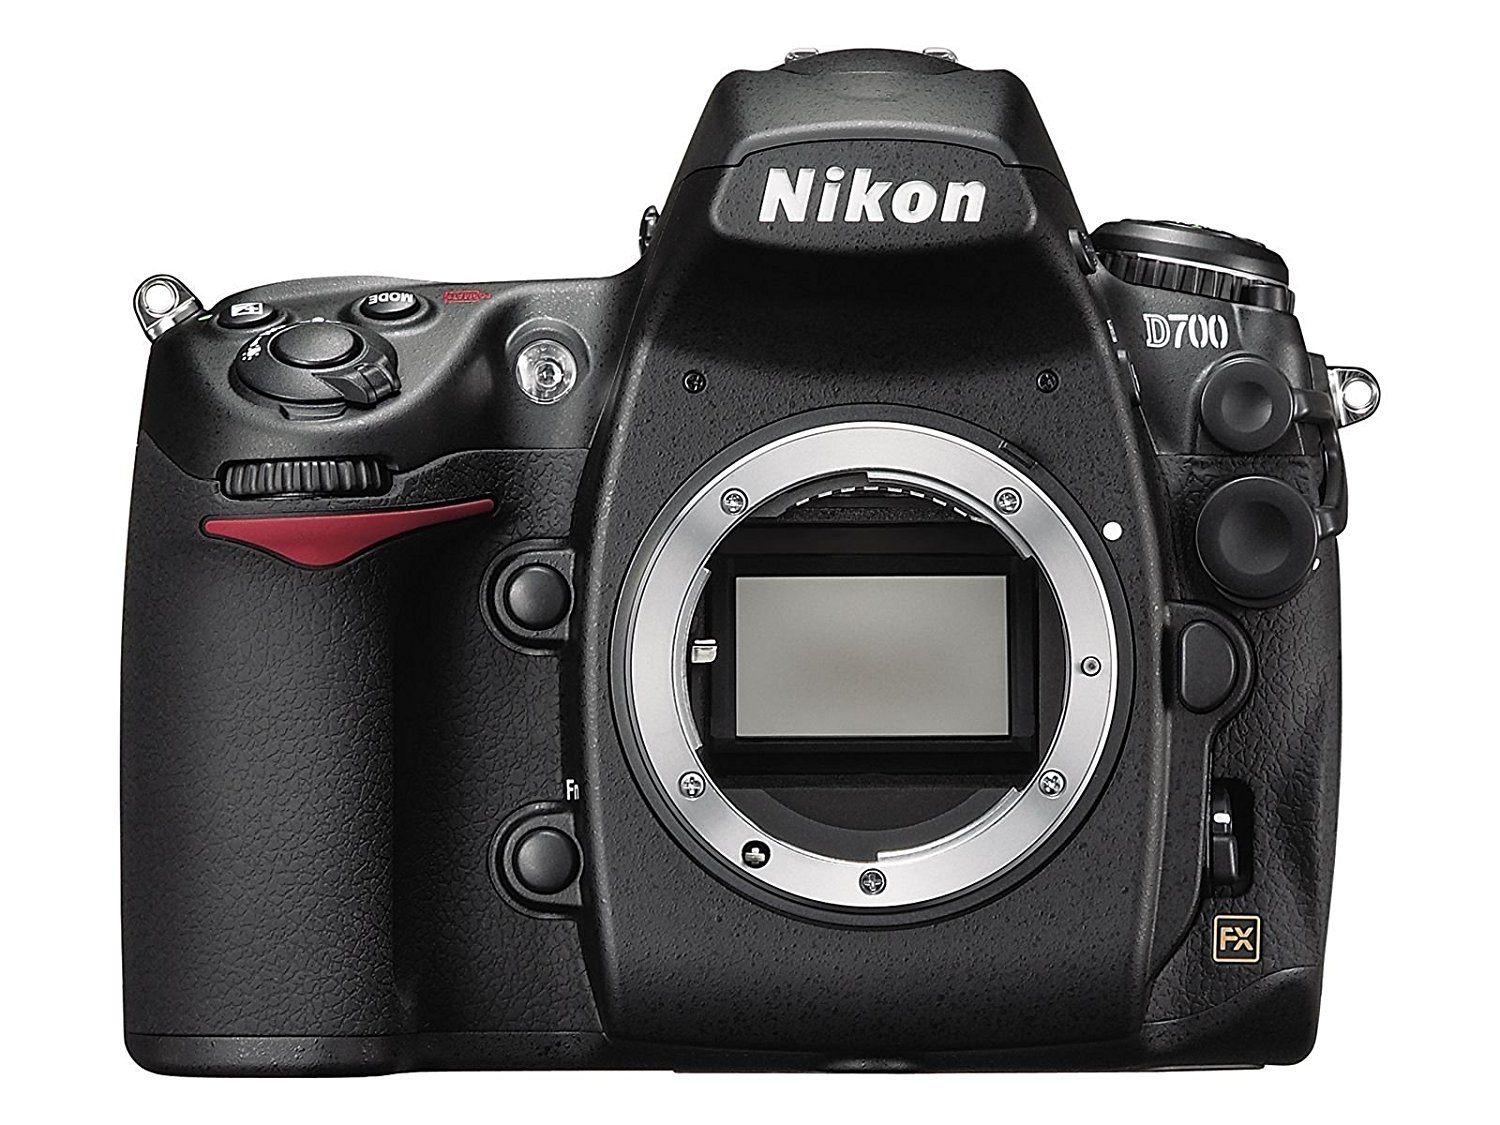 Nikon D700 - Cámara Réflex Digital 12.1 MP (Cuerpo) (Reacondicionado Certificado)